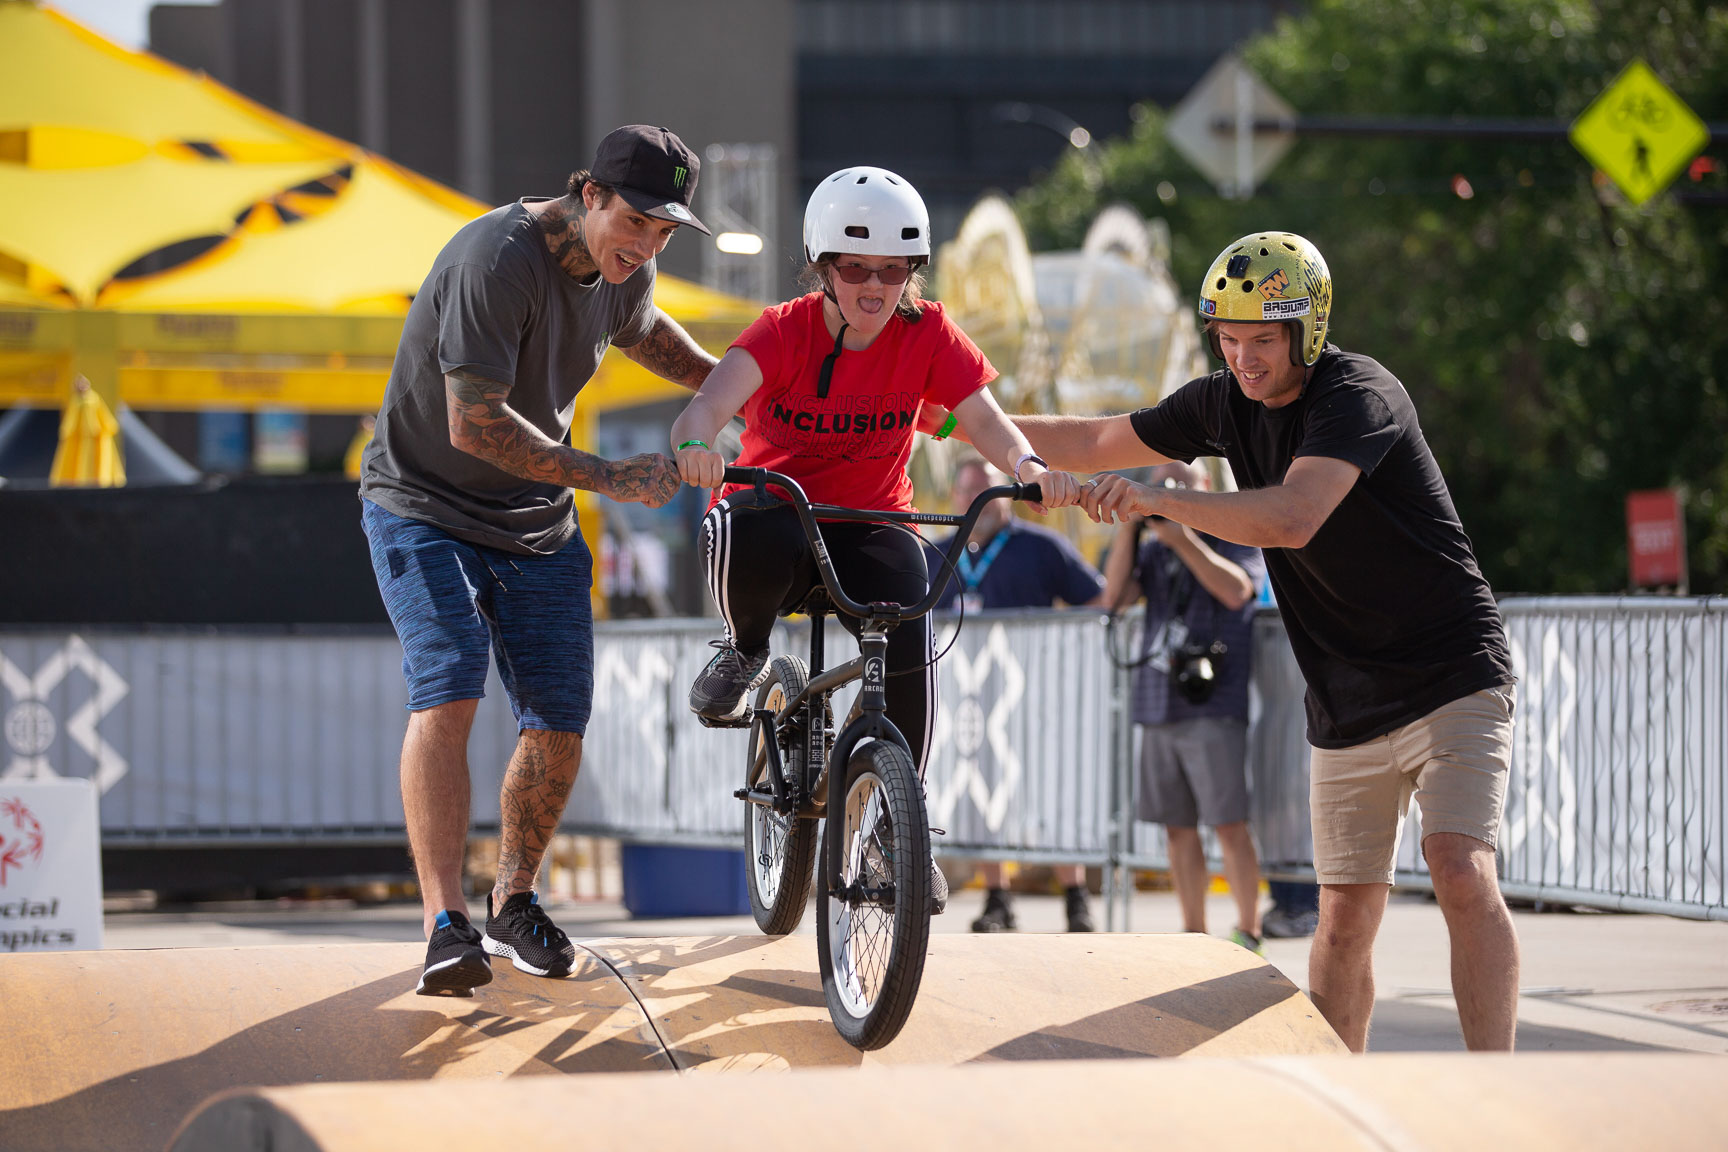 Kyle Baldock and Ryan Williams, Special Olympics Unified BMX